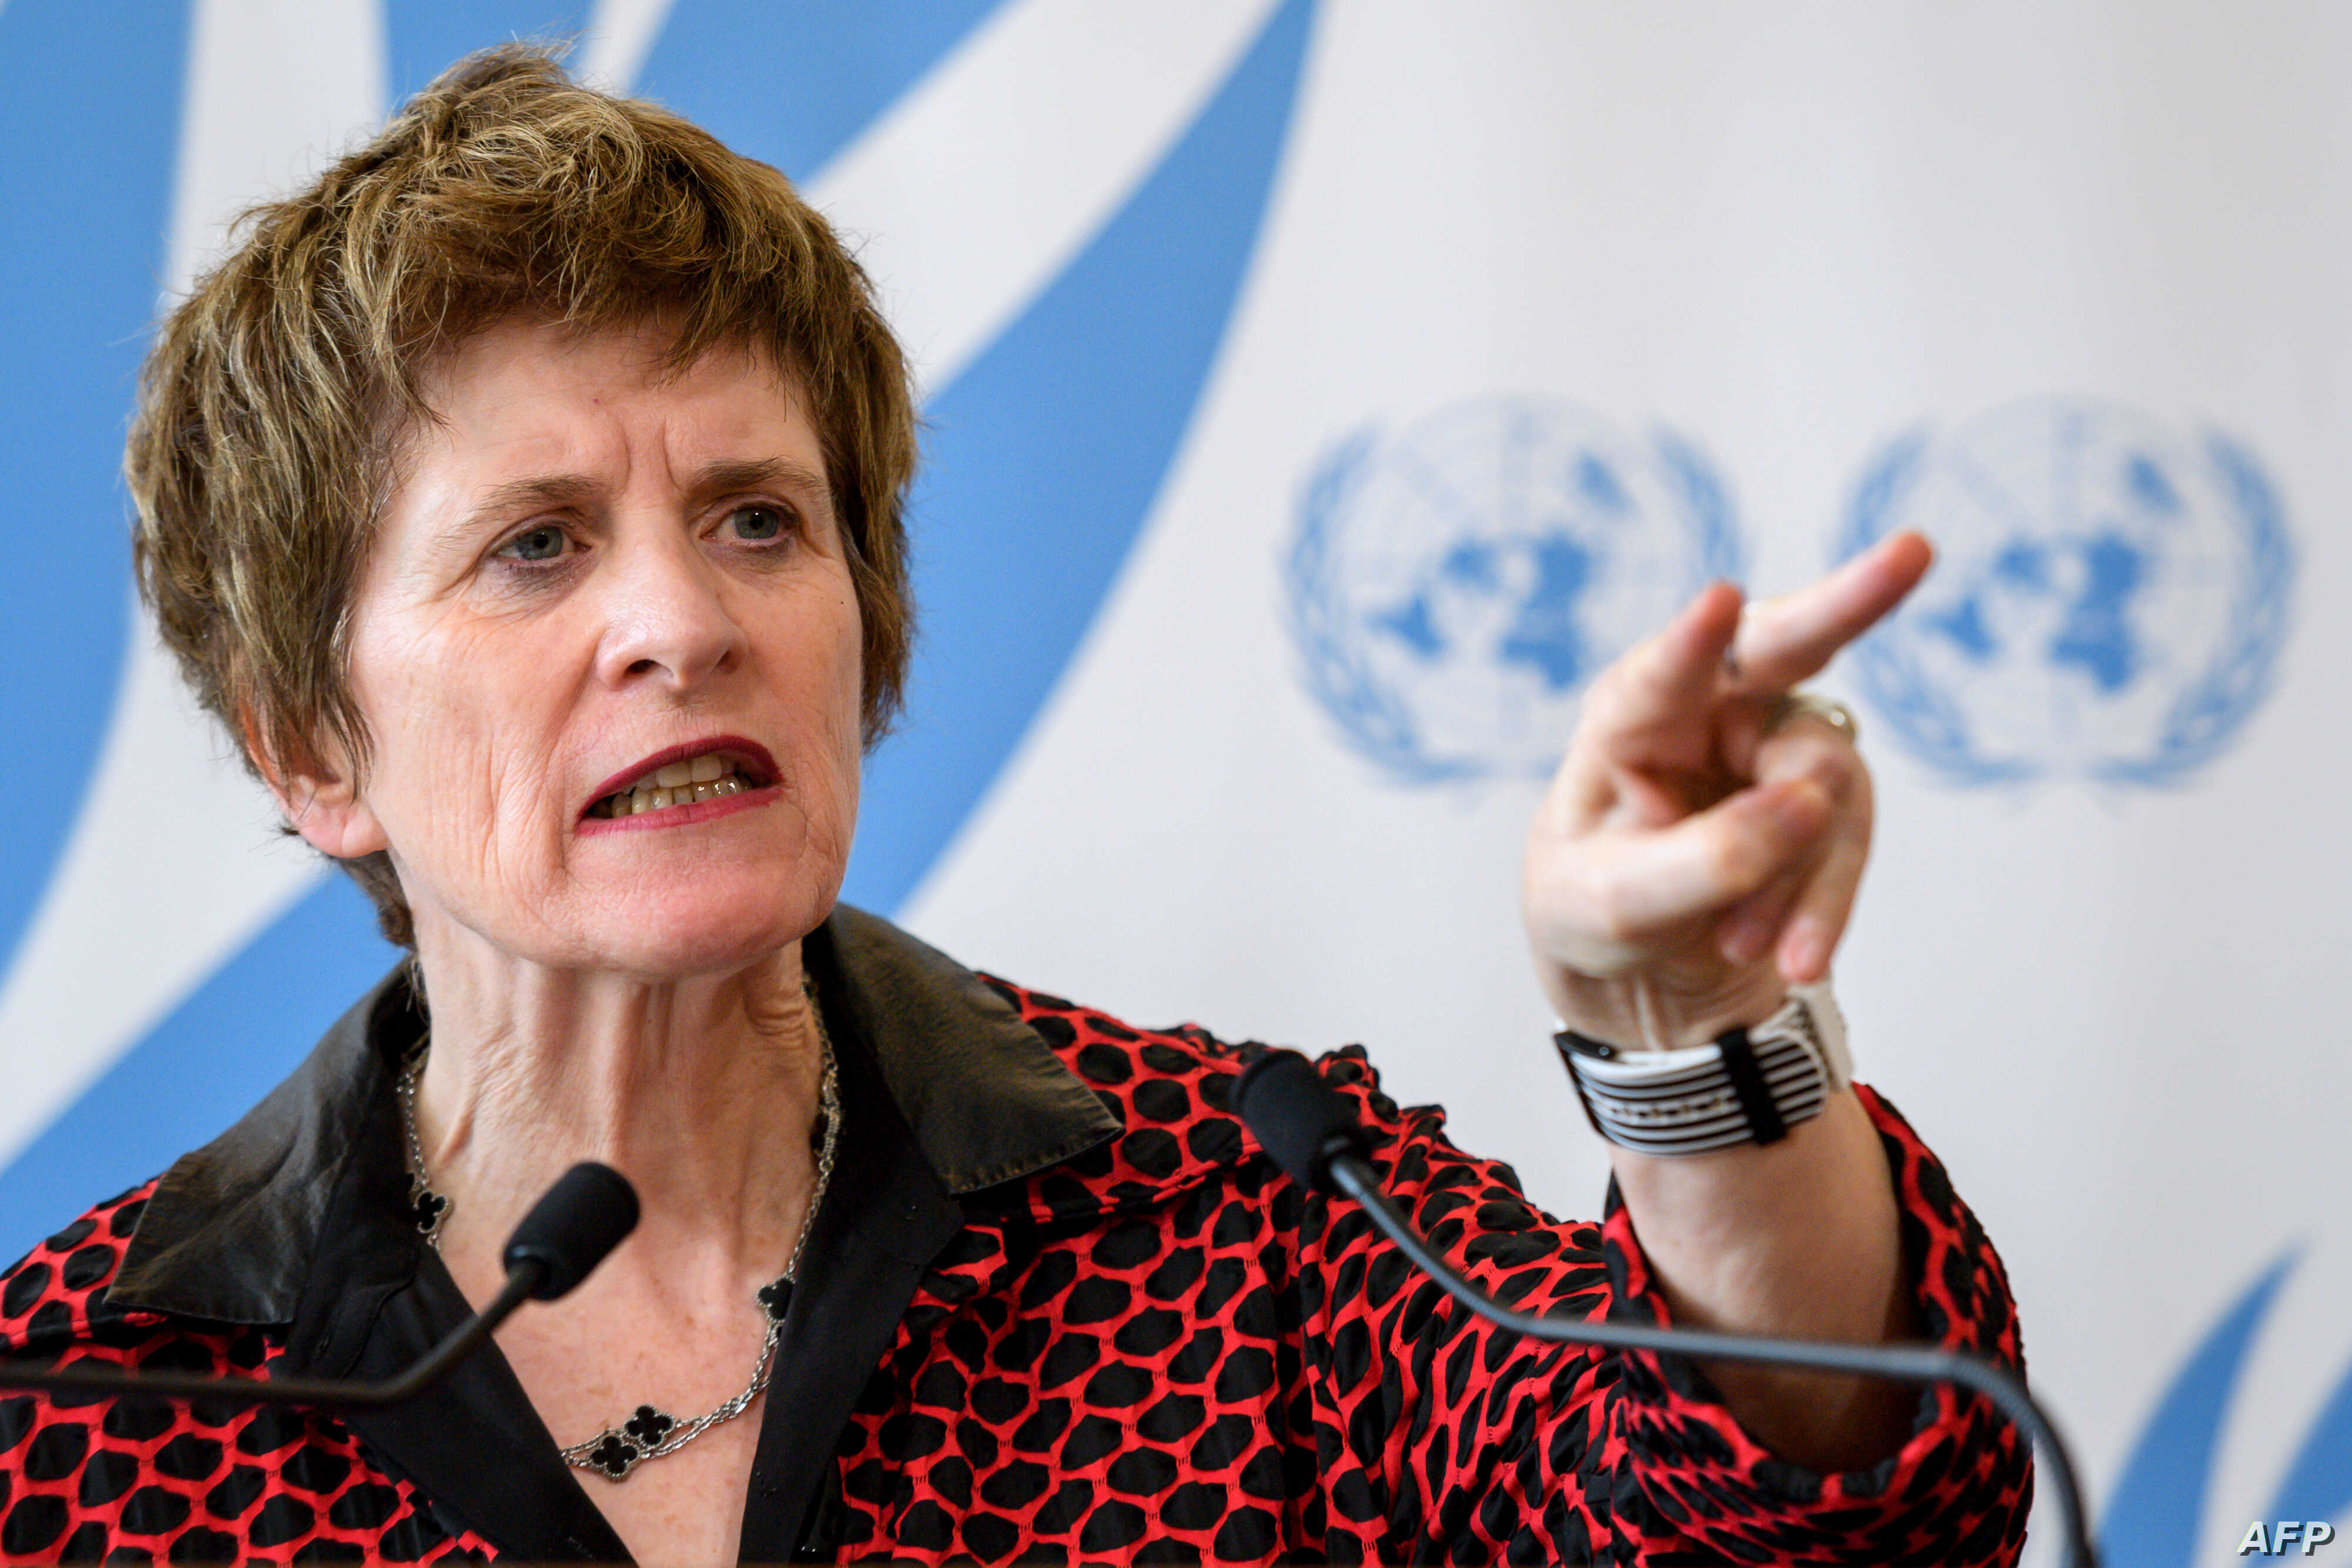 UN: No Rights Progress in Eritrea After Peace Deal With